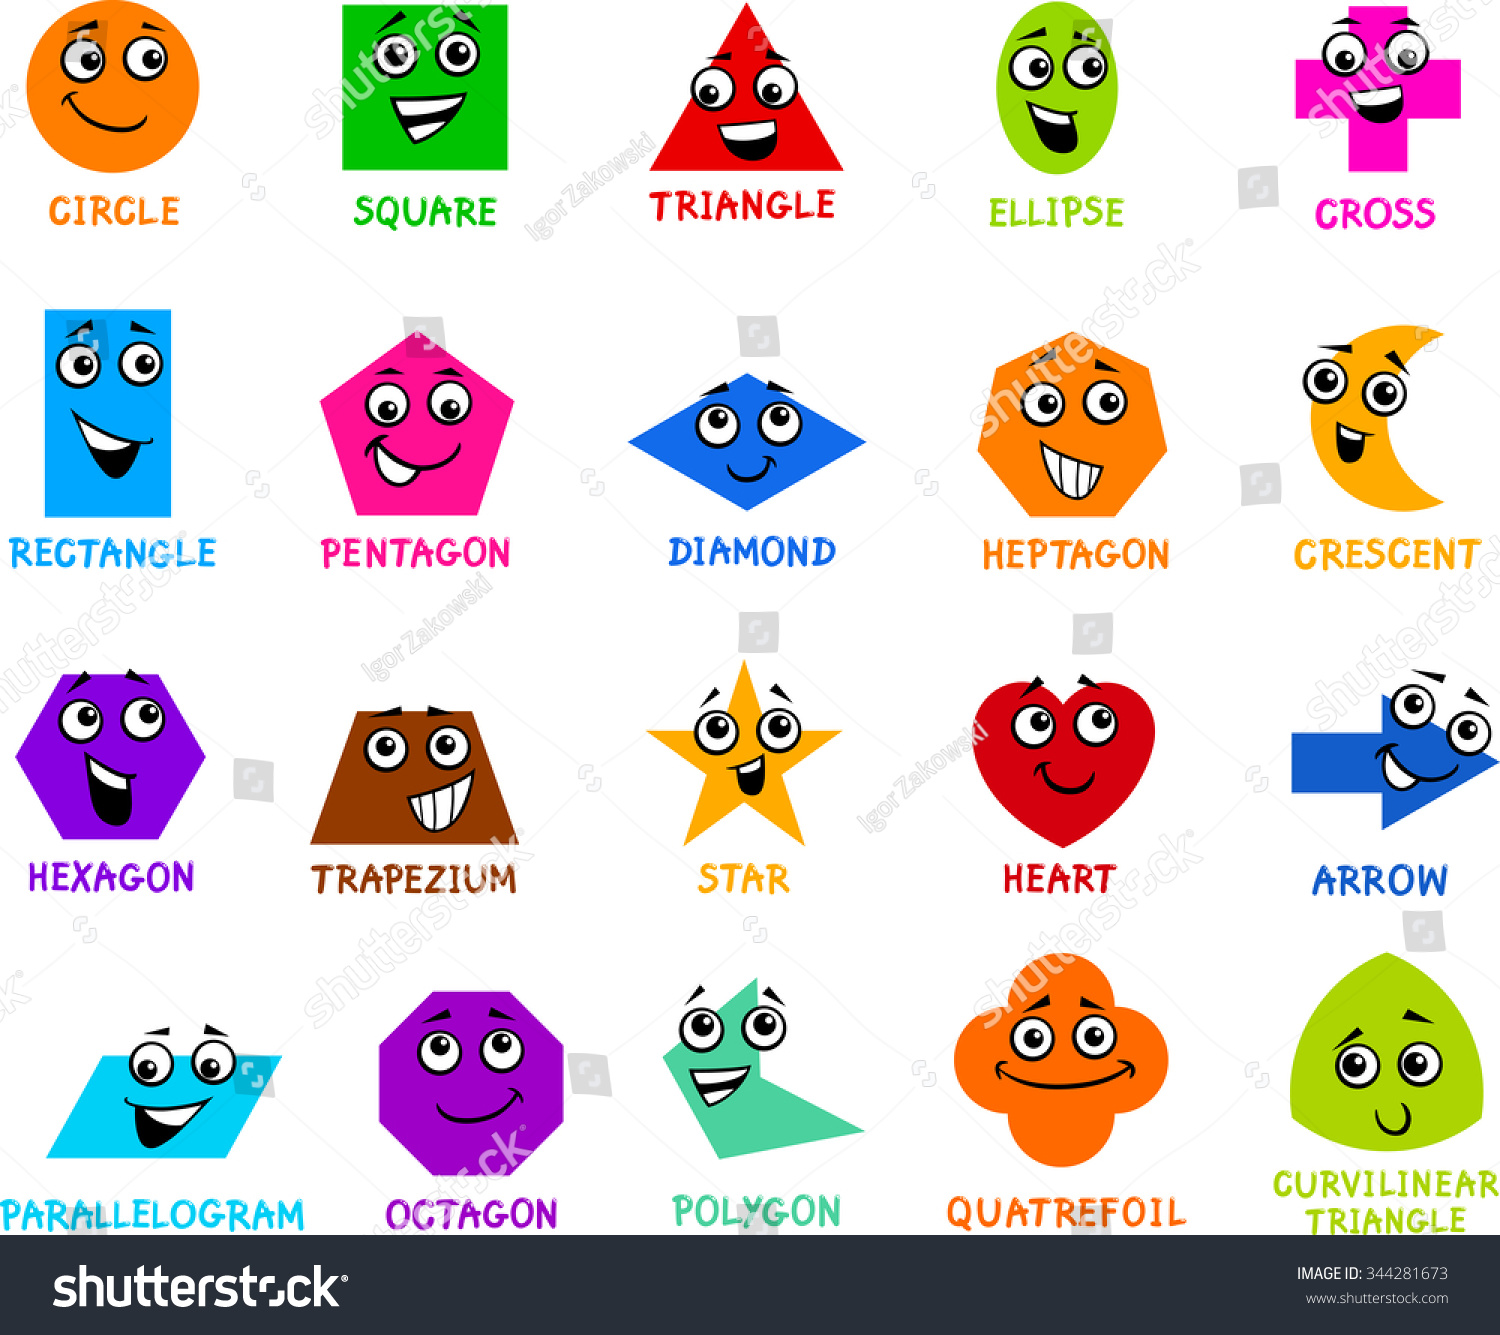 Worksheet Preschool Shapes cartoon illustration educational basic geometric shapes stock of characters with captions for preschool or primary school children